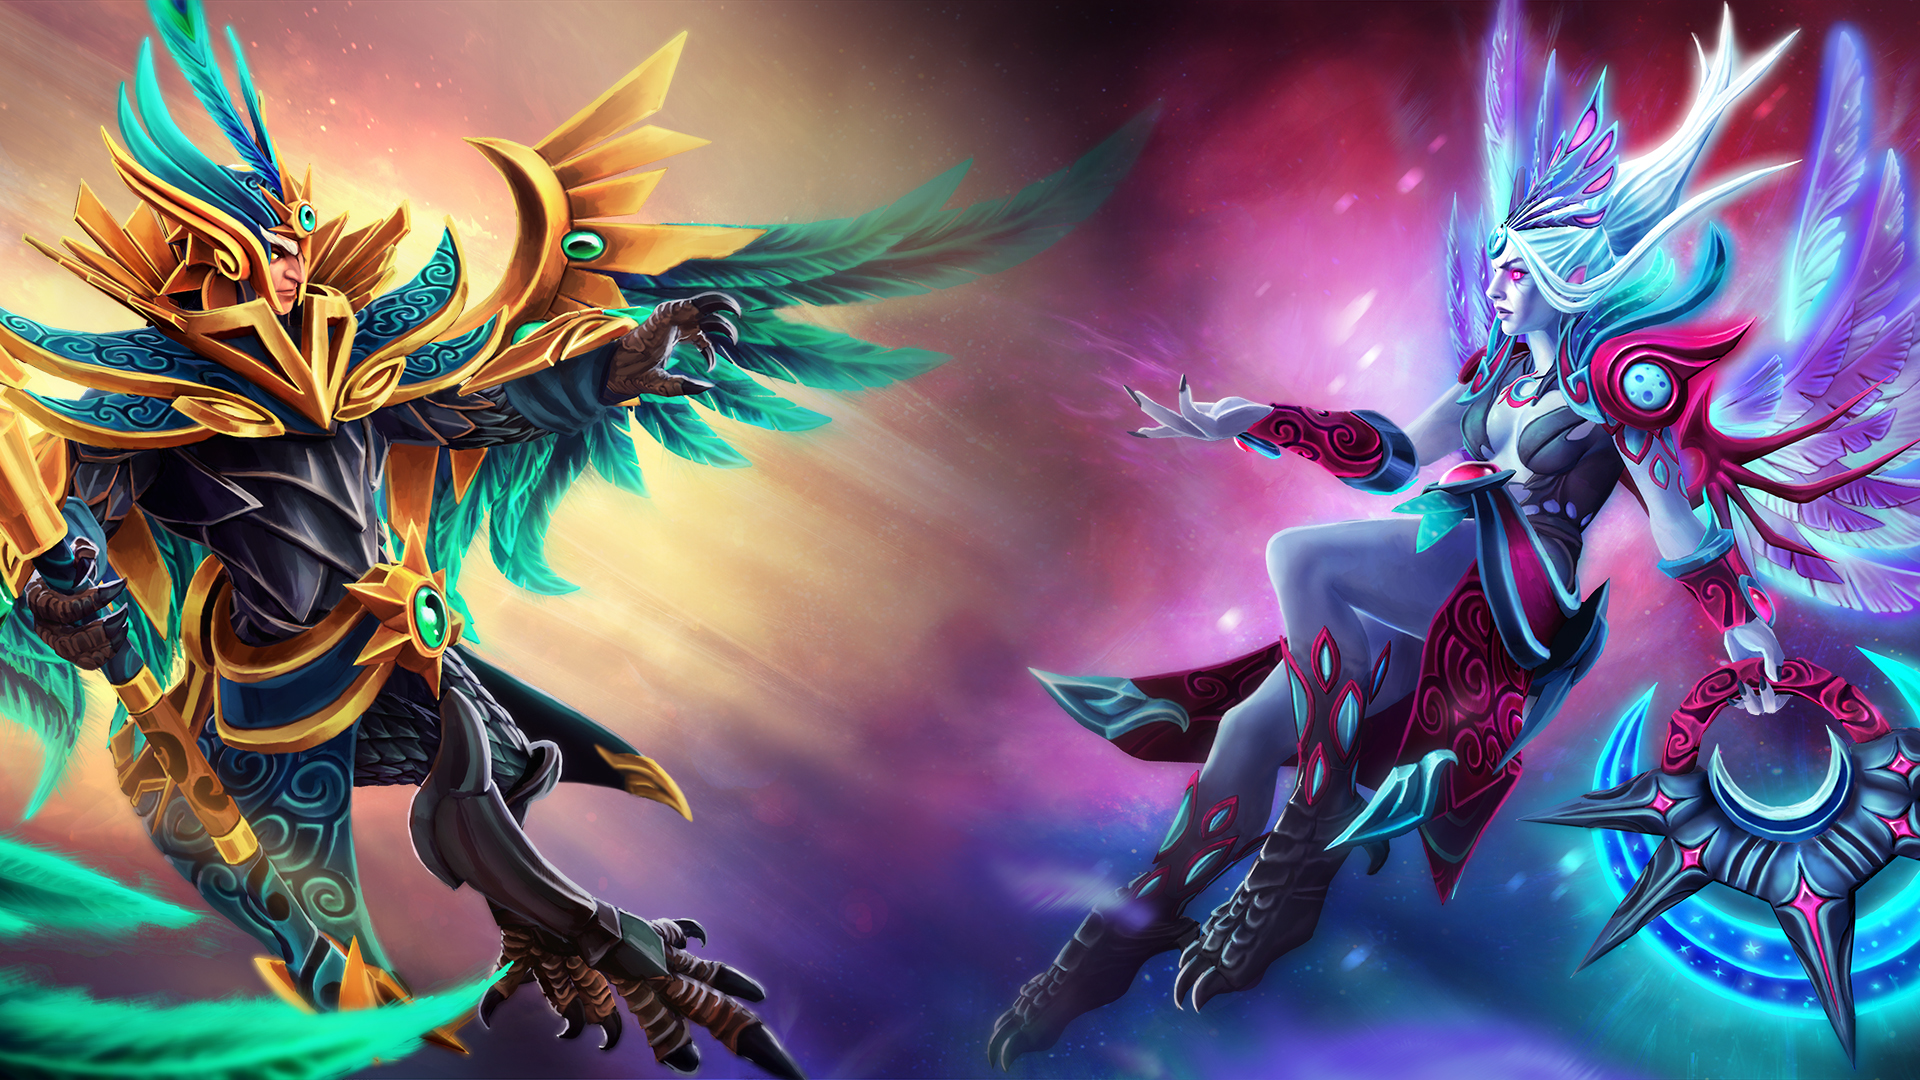 Vengeful Spirit, Skywrath Mage